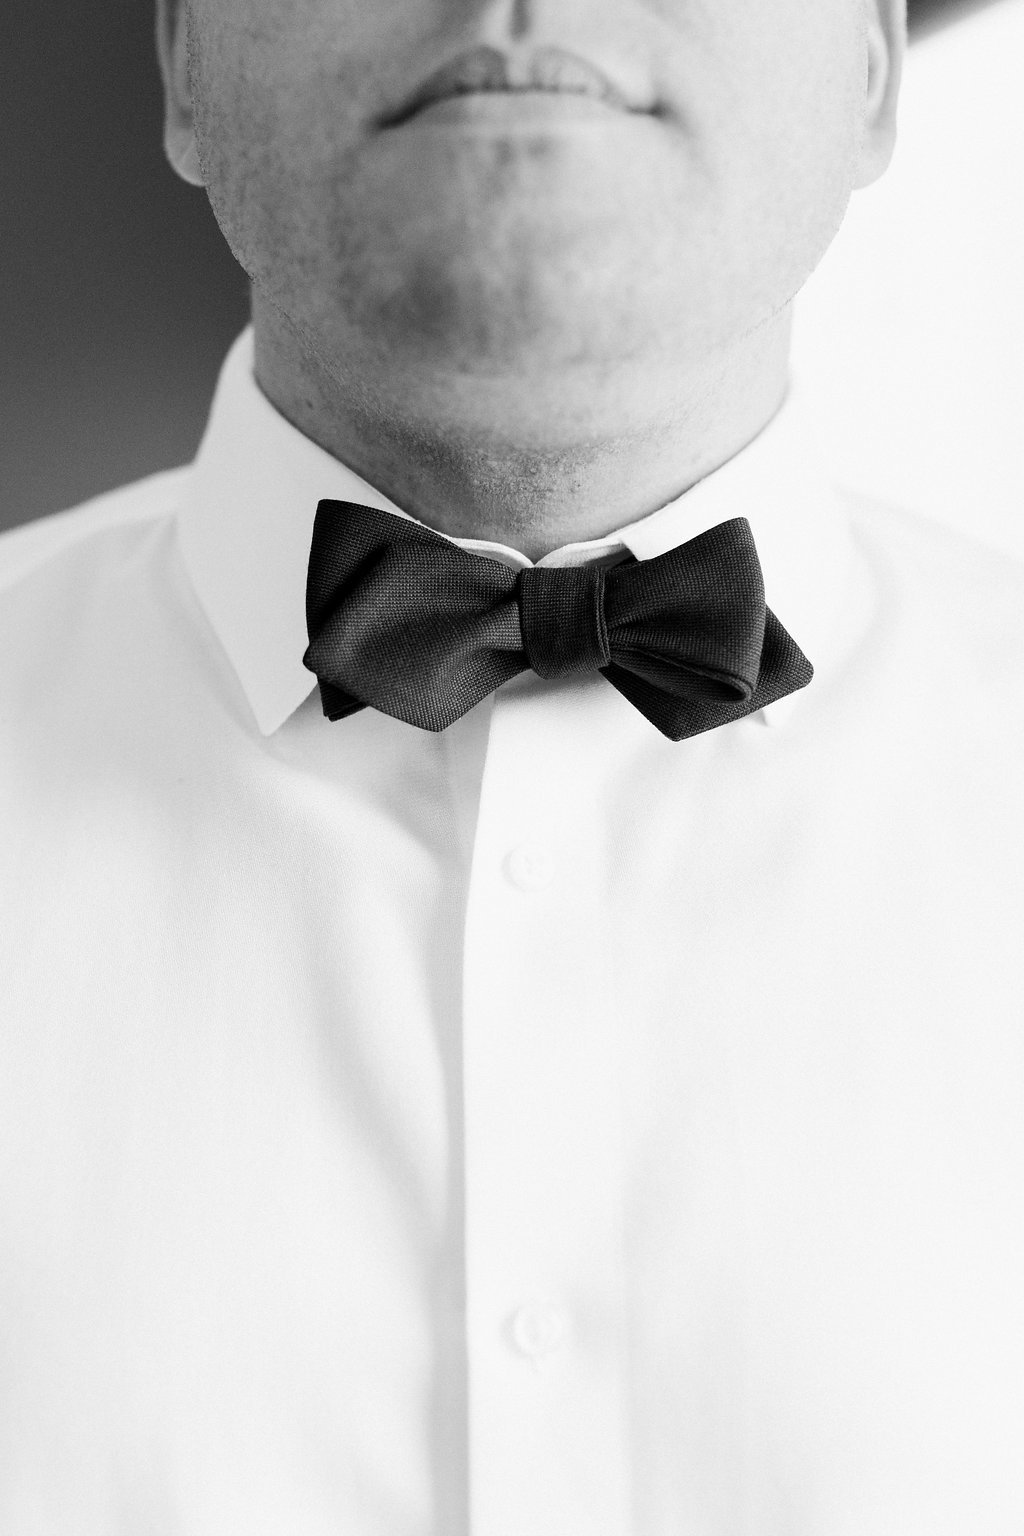 Close up photo of groom's bowtie during getting ready portraits